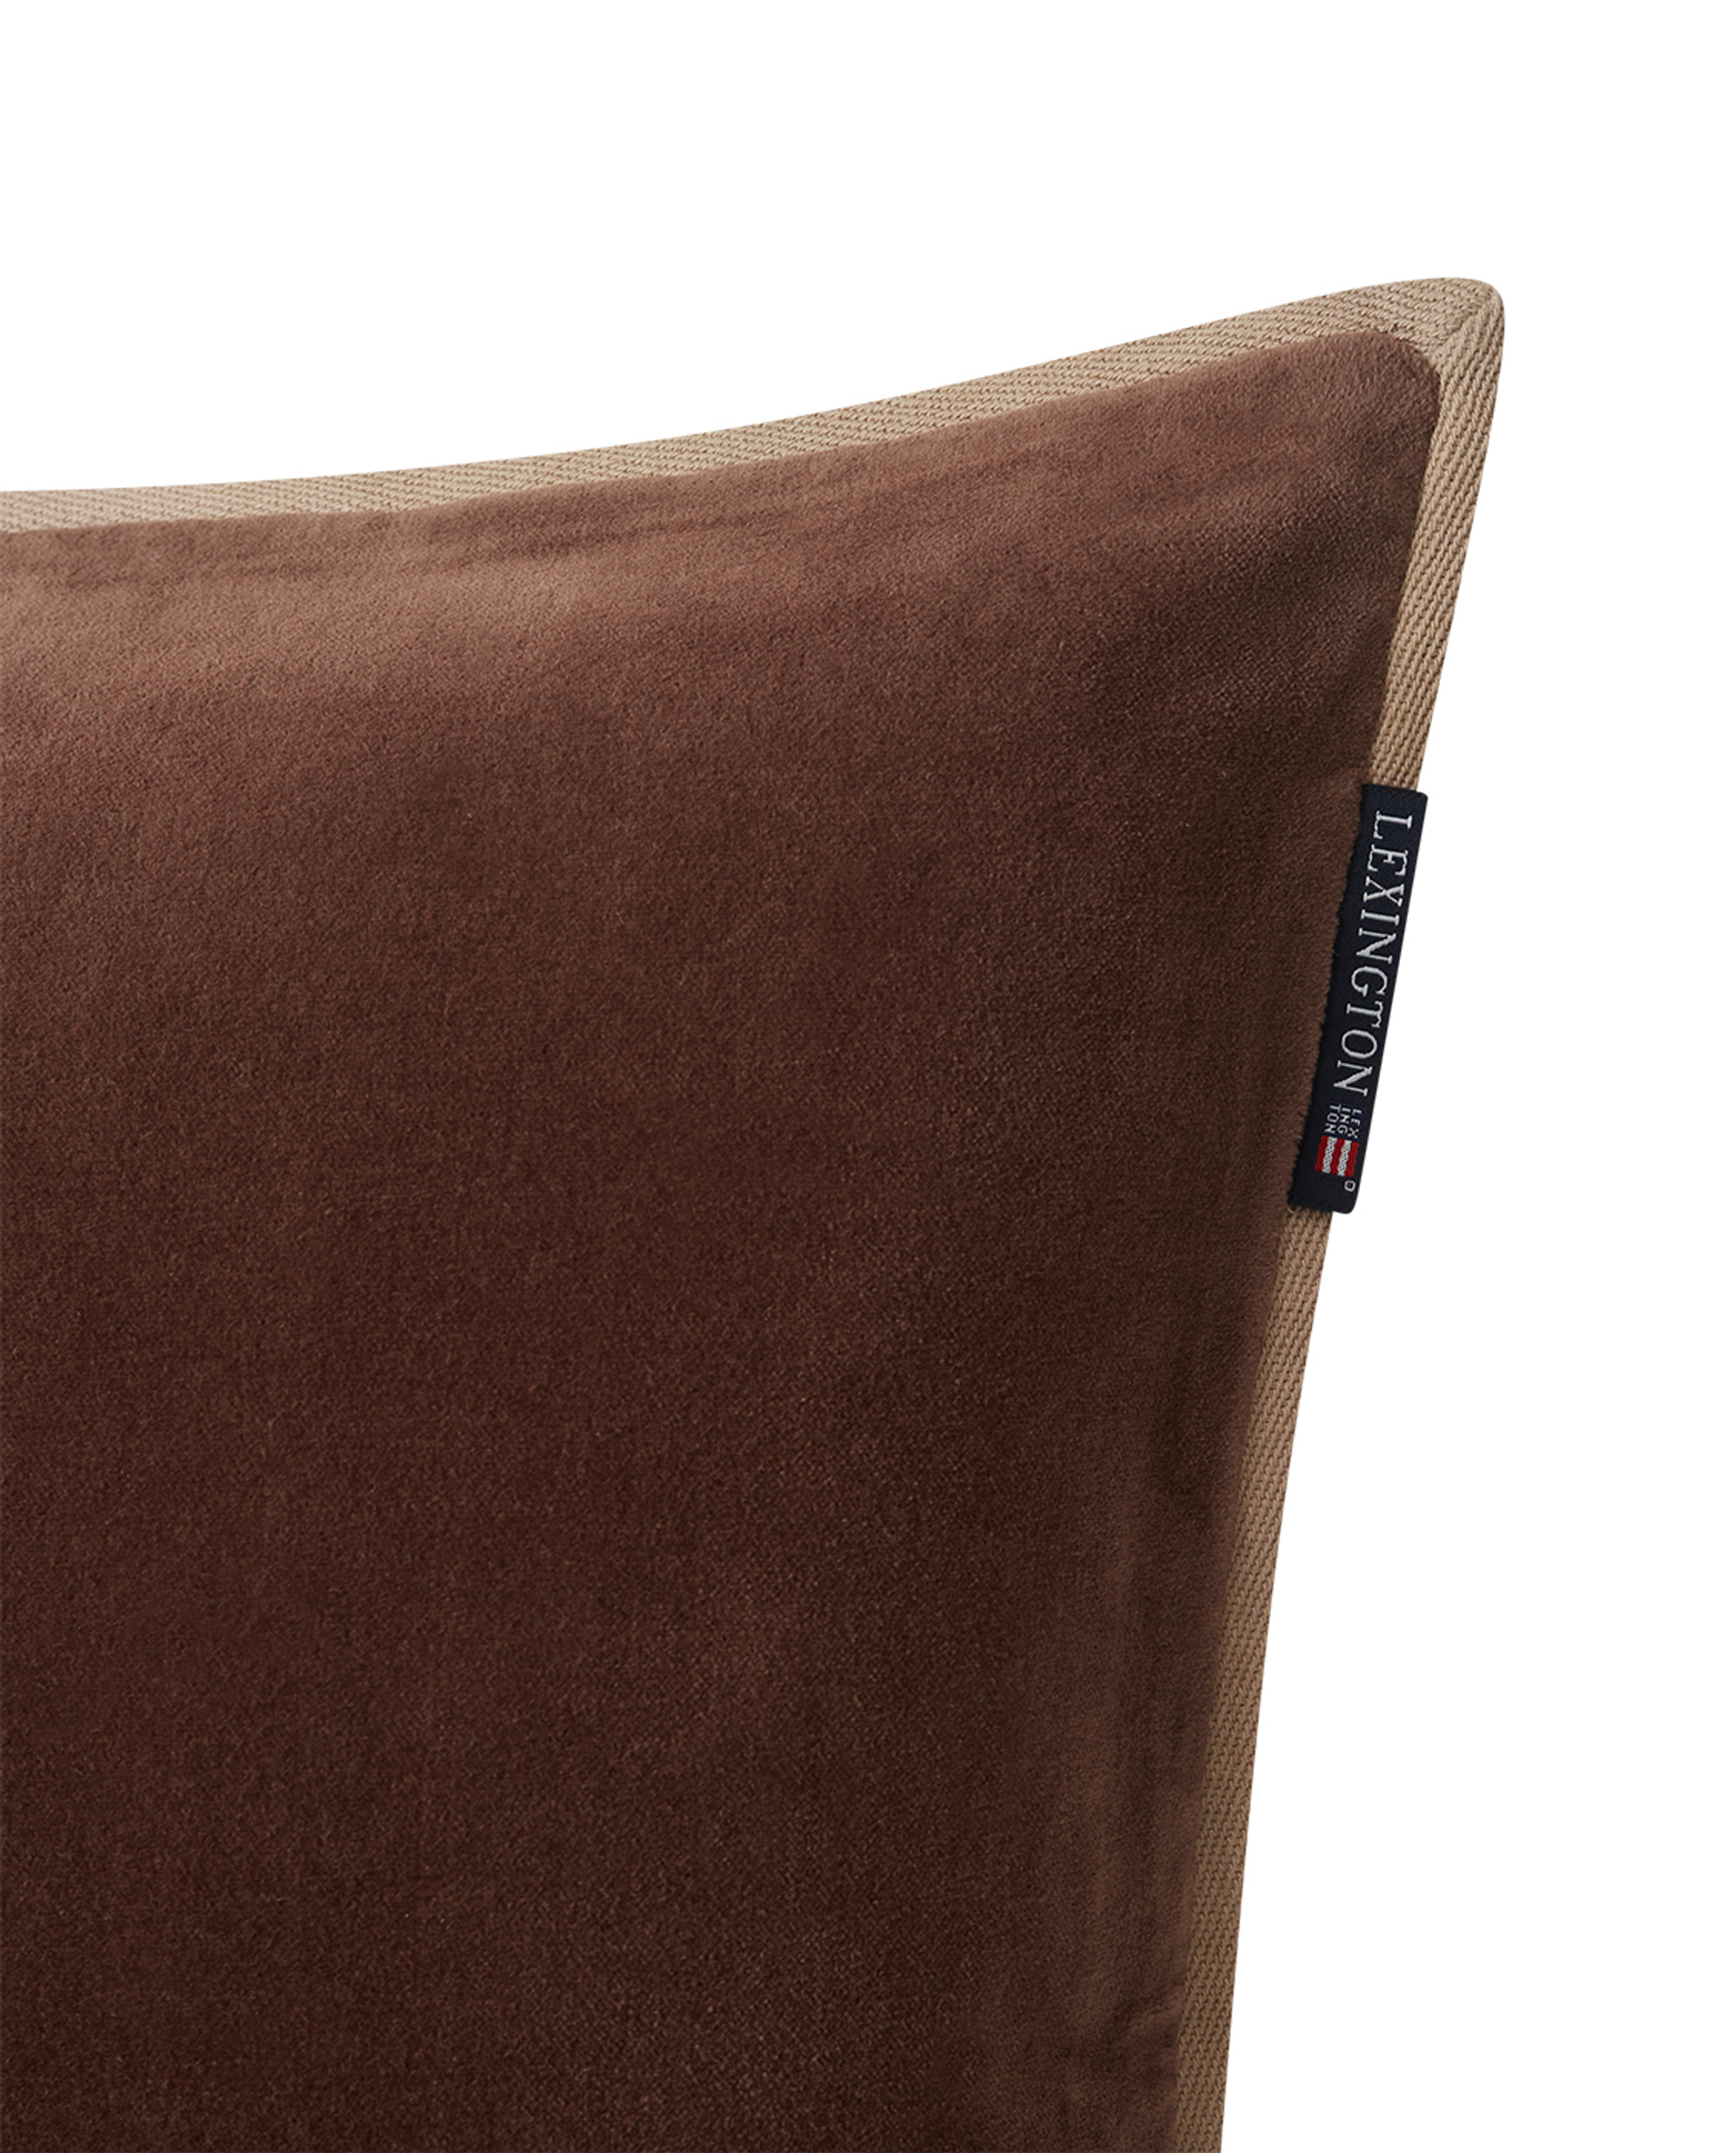 Velvet Cotton Pillow Cover With Edge, Brown